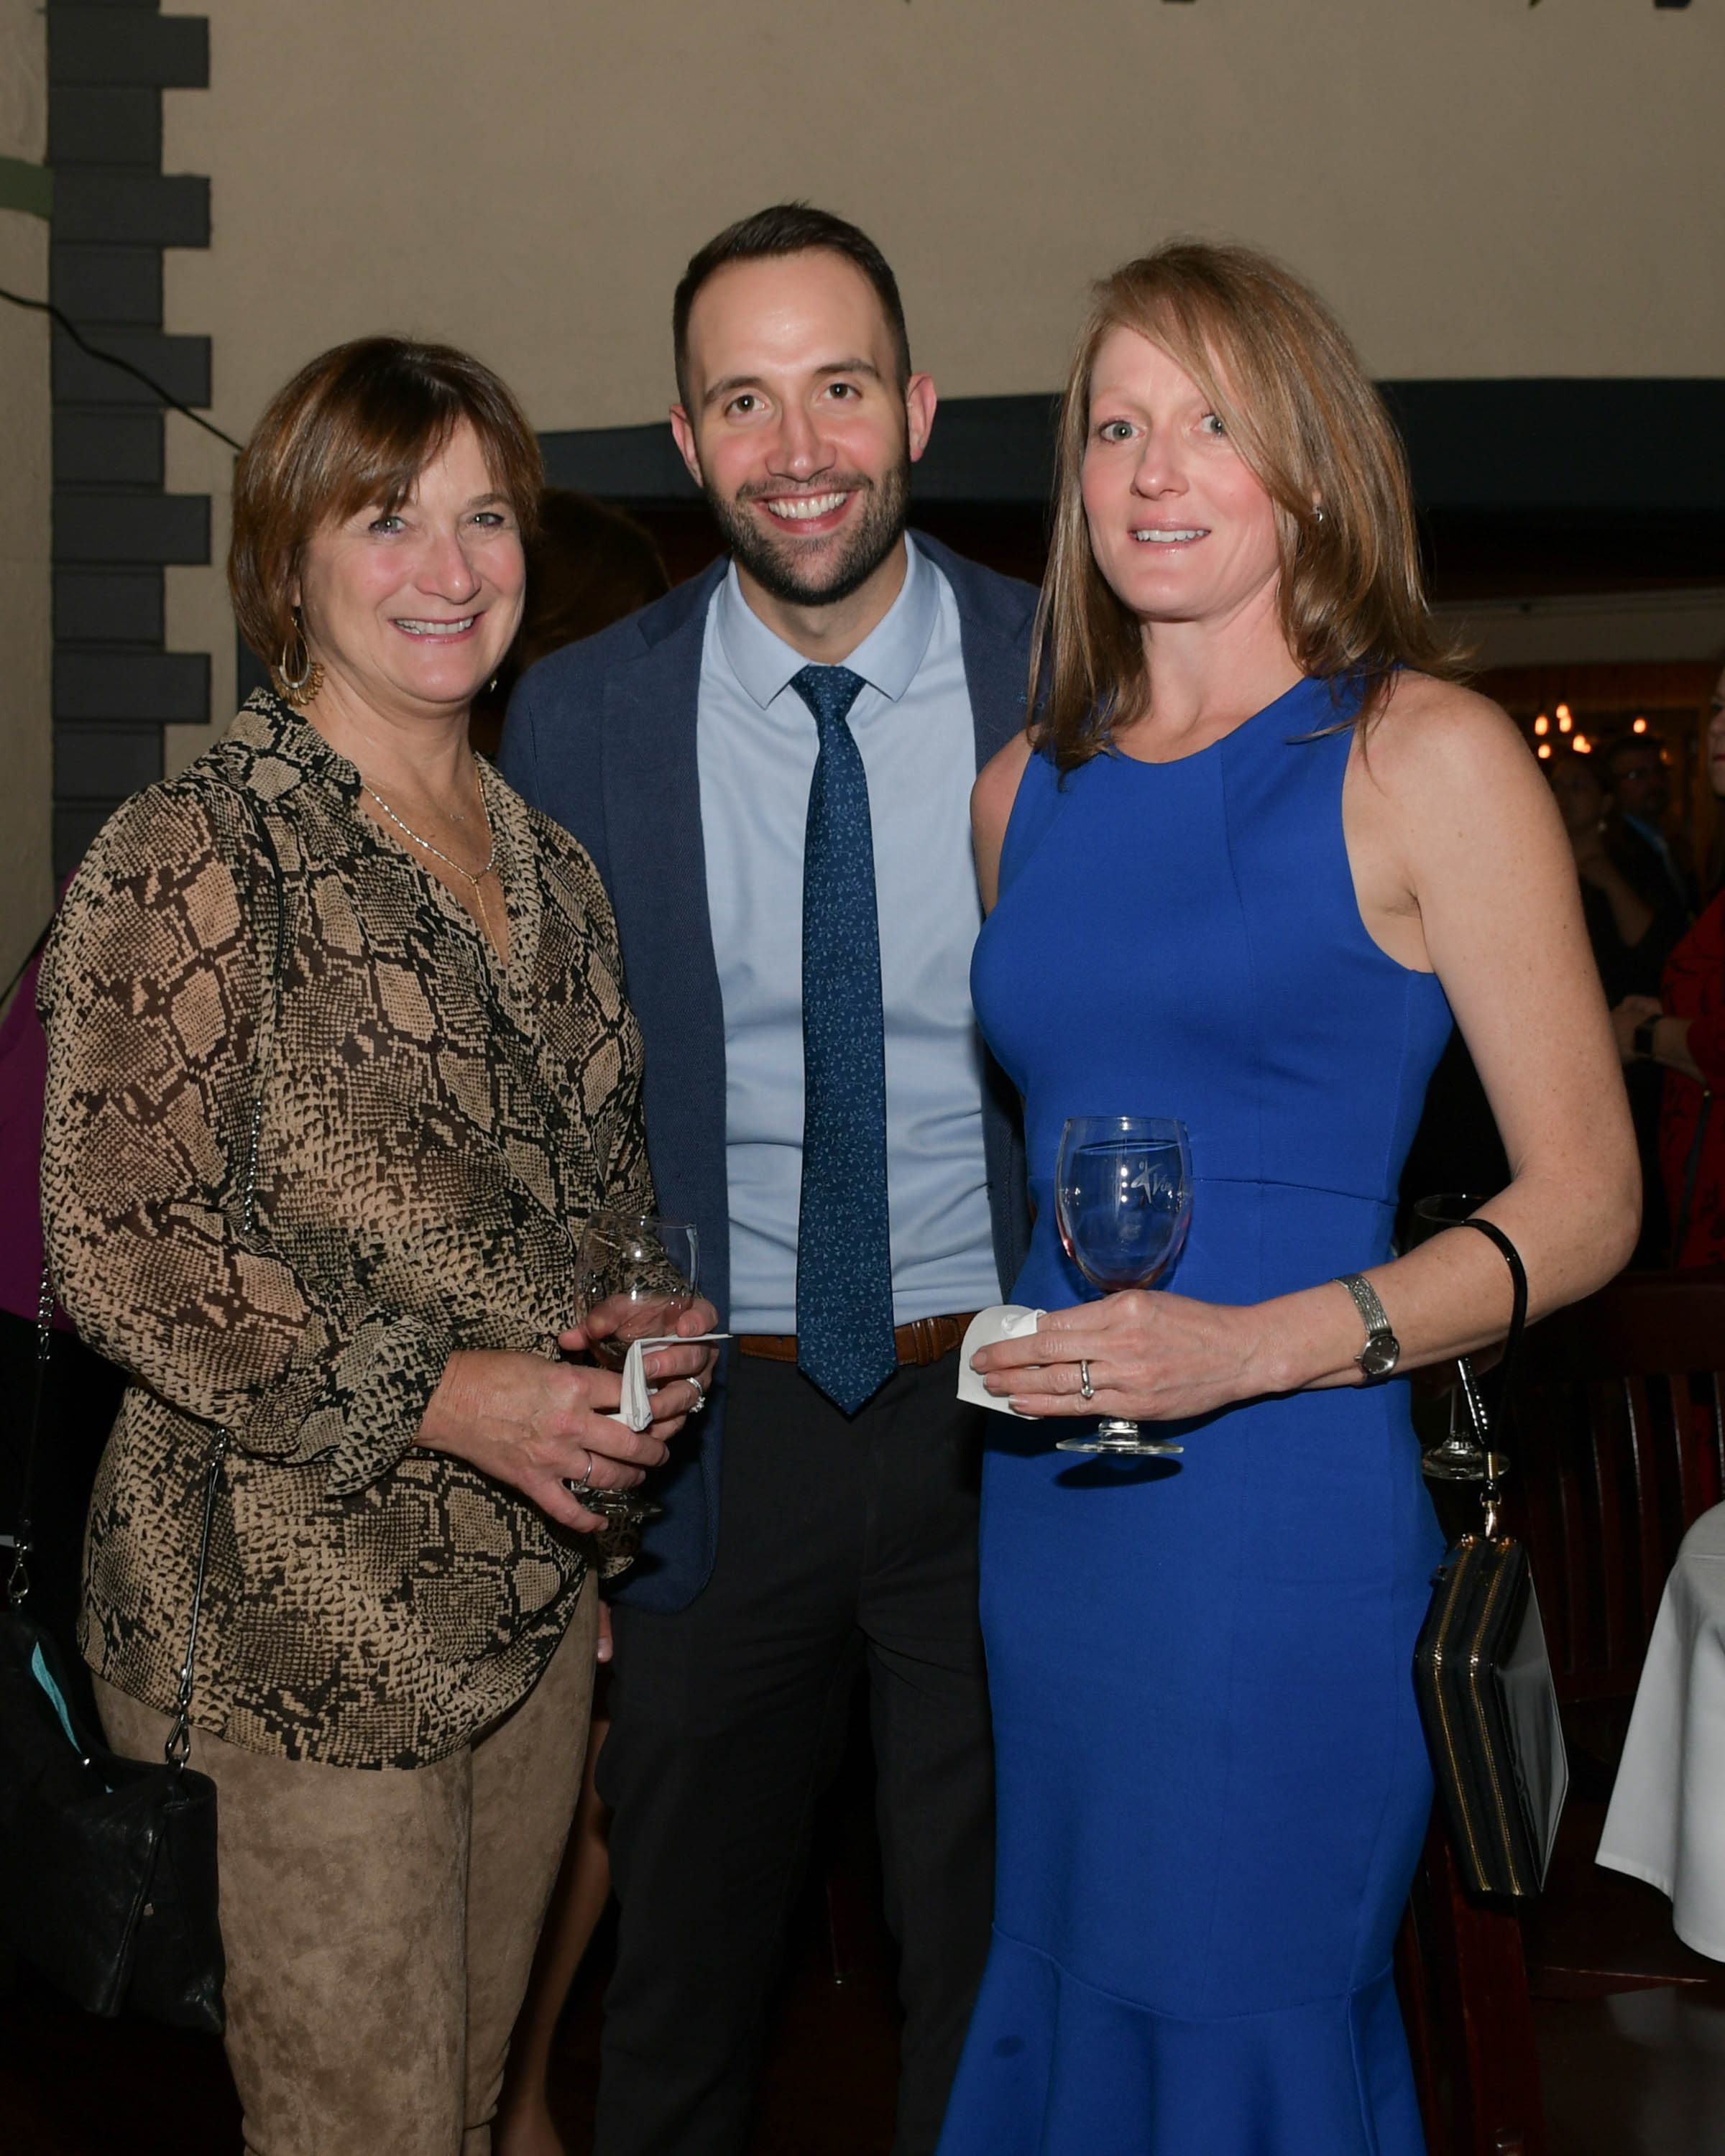 Vin Le Soir to benefit AIM Services, Inc. three people with wine